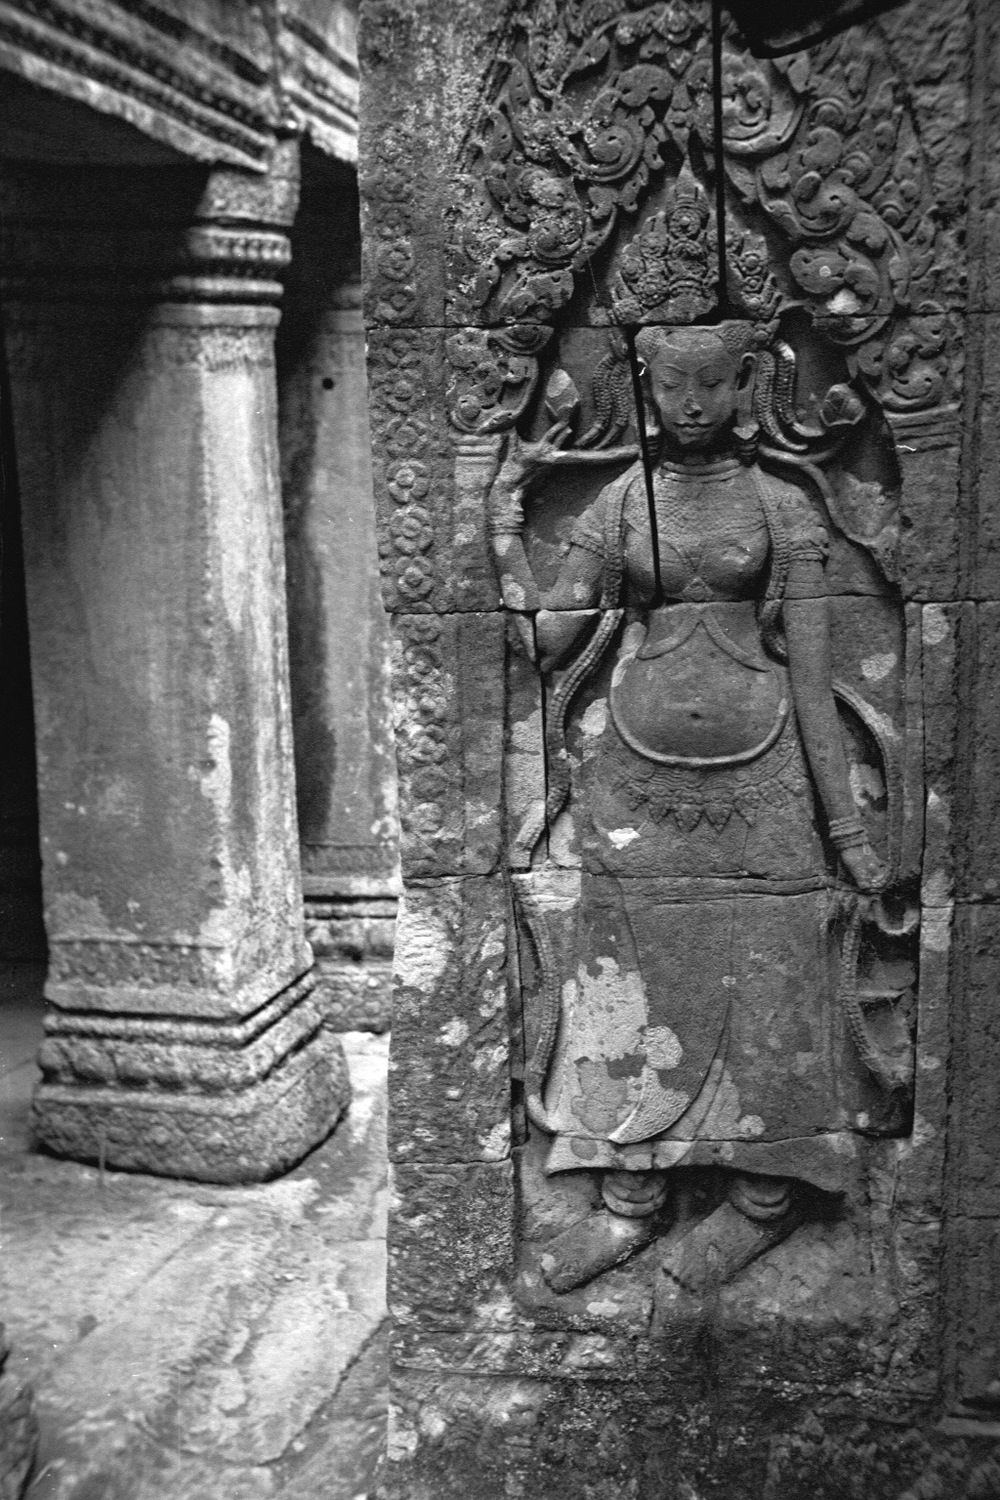 Image of an Apsara in the Angkor temple complex, Image courtesy of SKY, 2001.